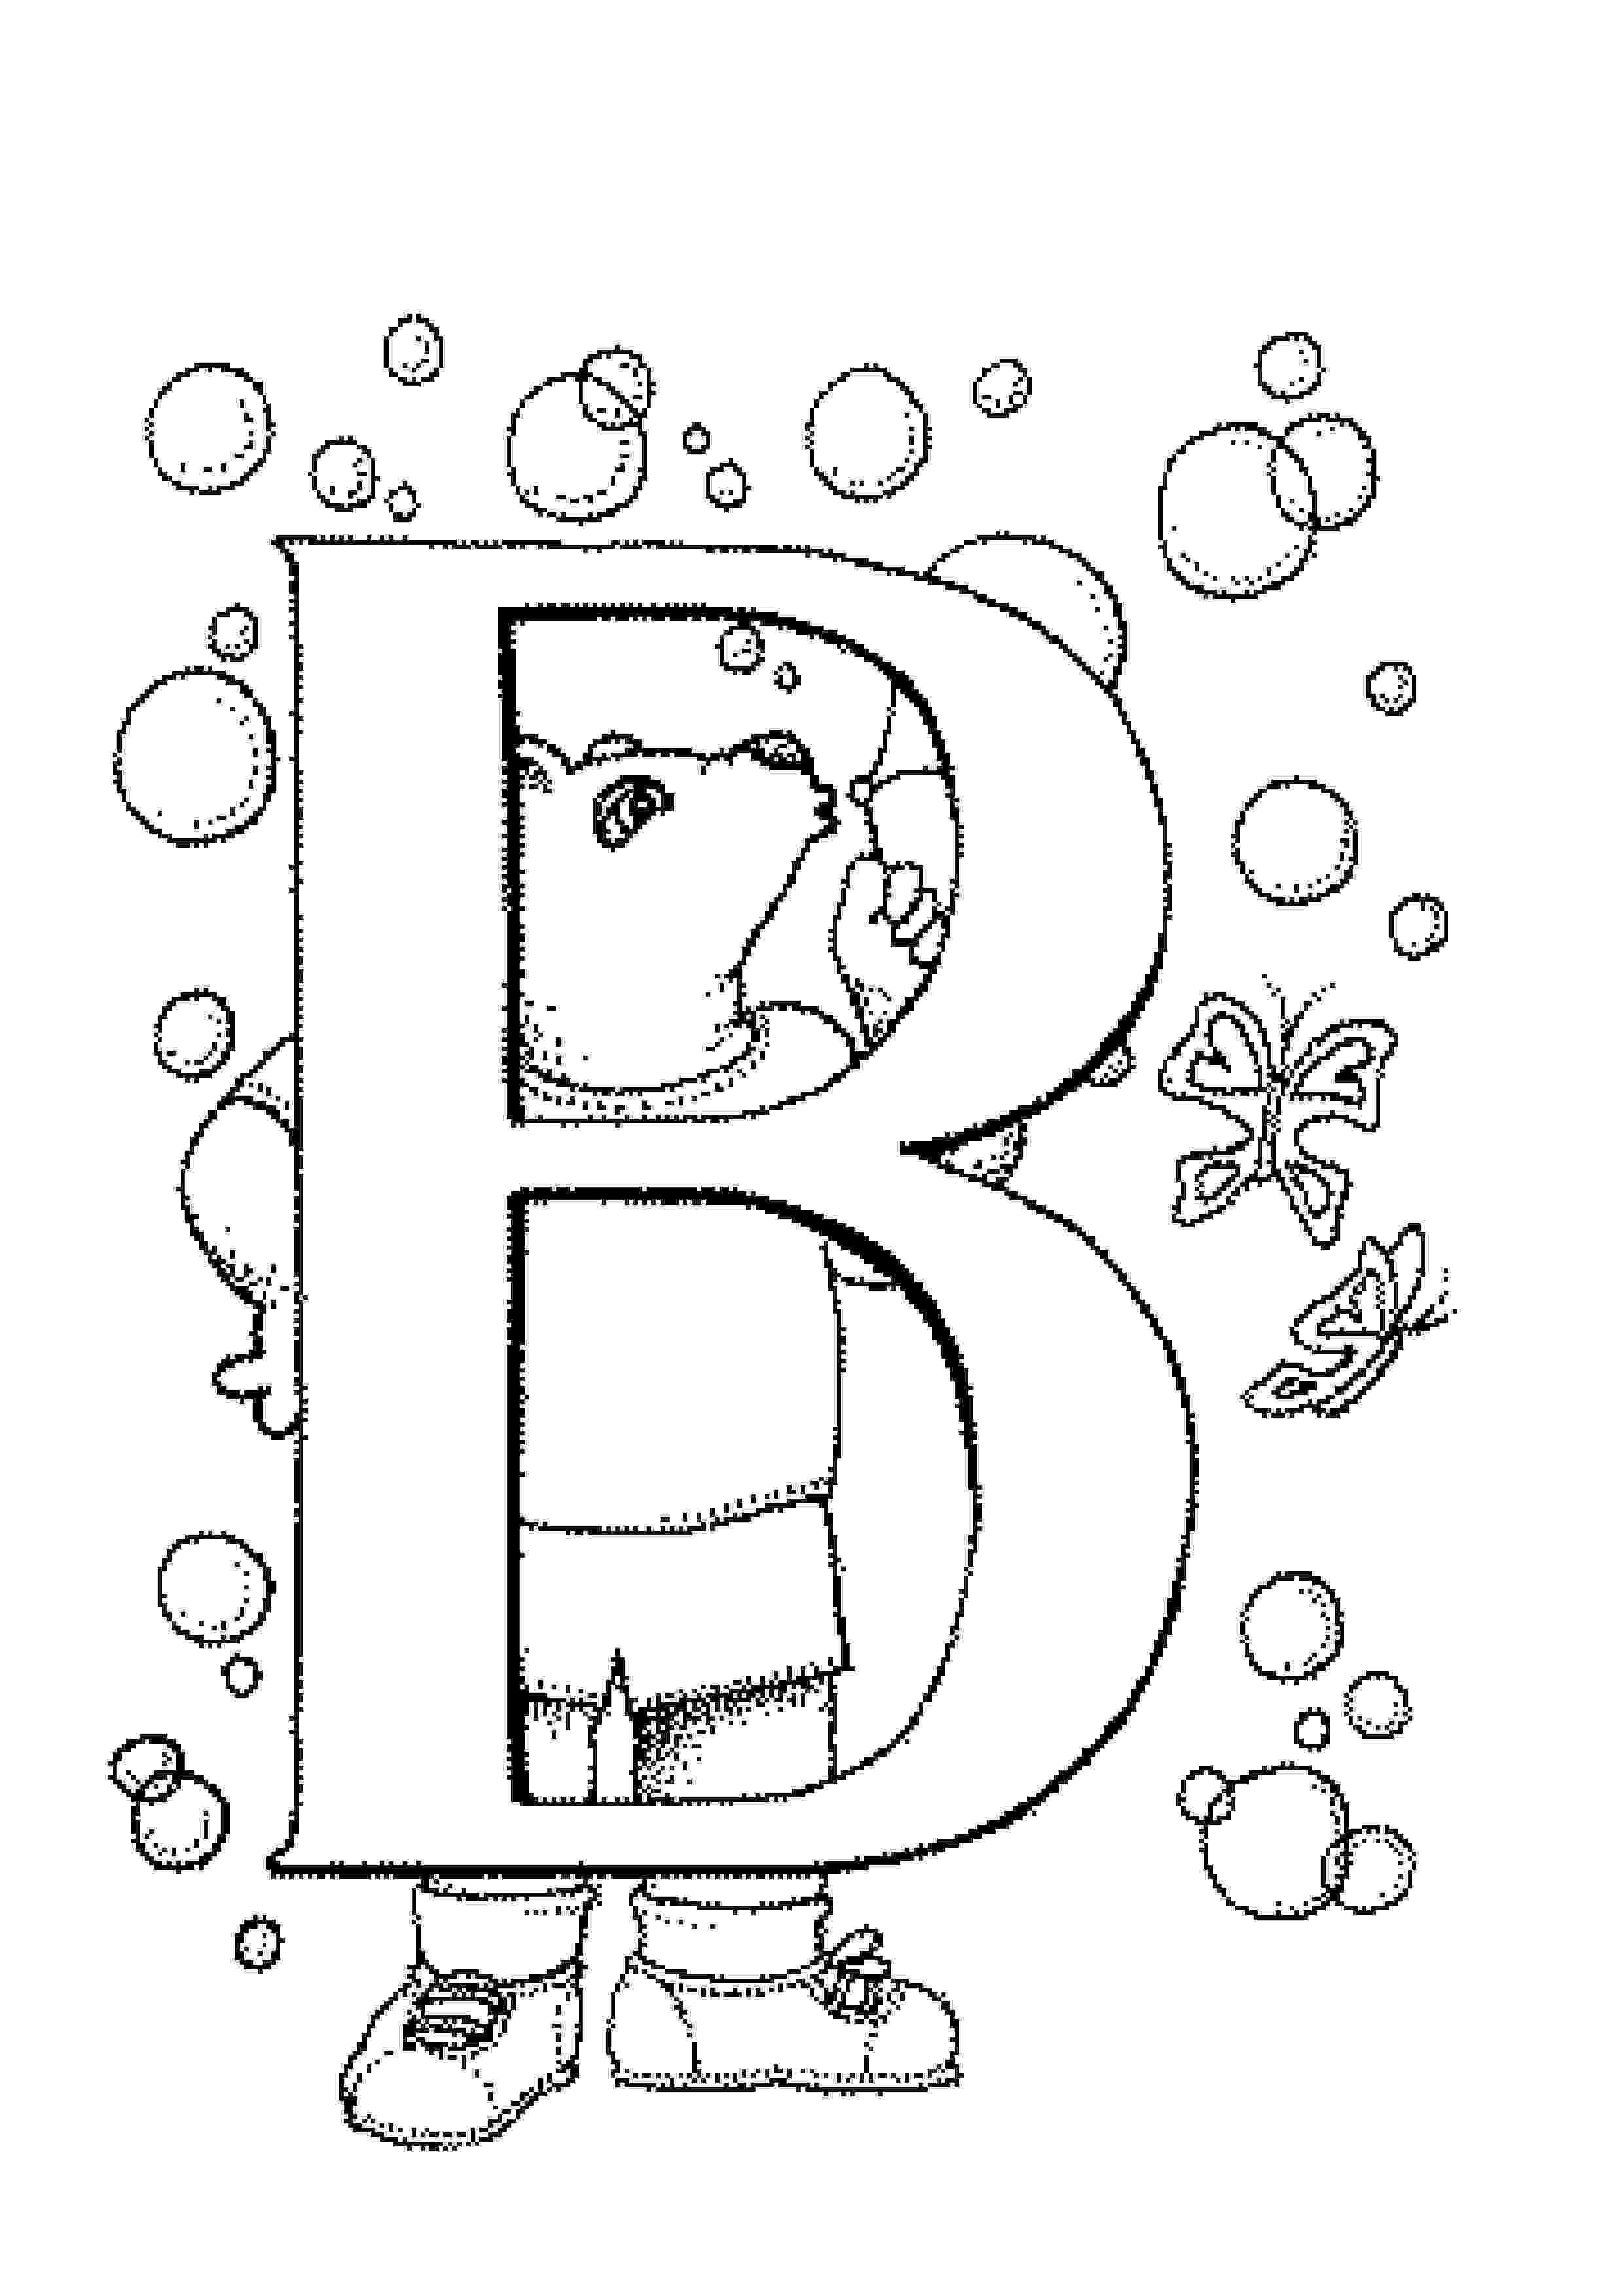 printable coloring book letters alphabet printable images gallery category page 14 printable book coloring letters